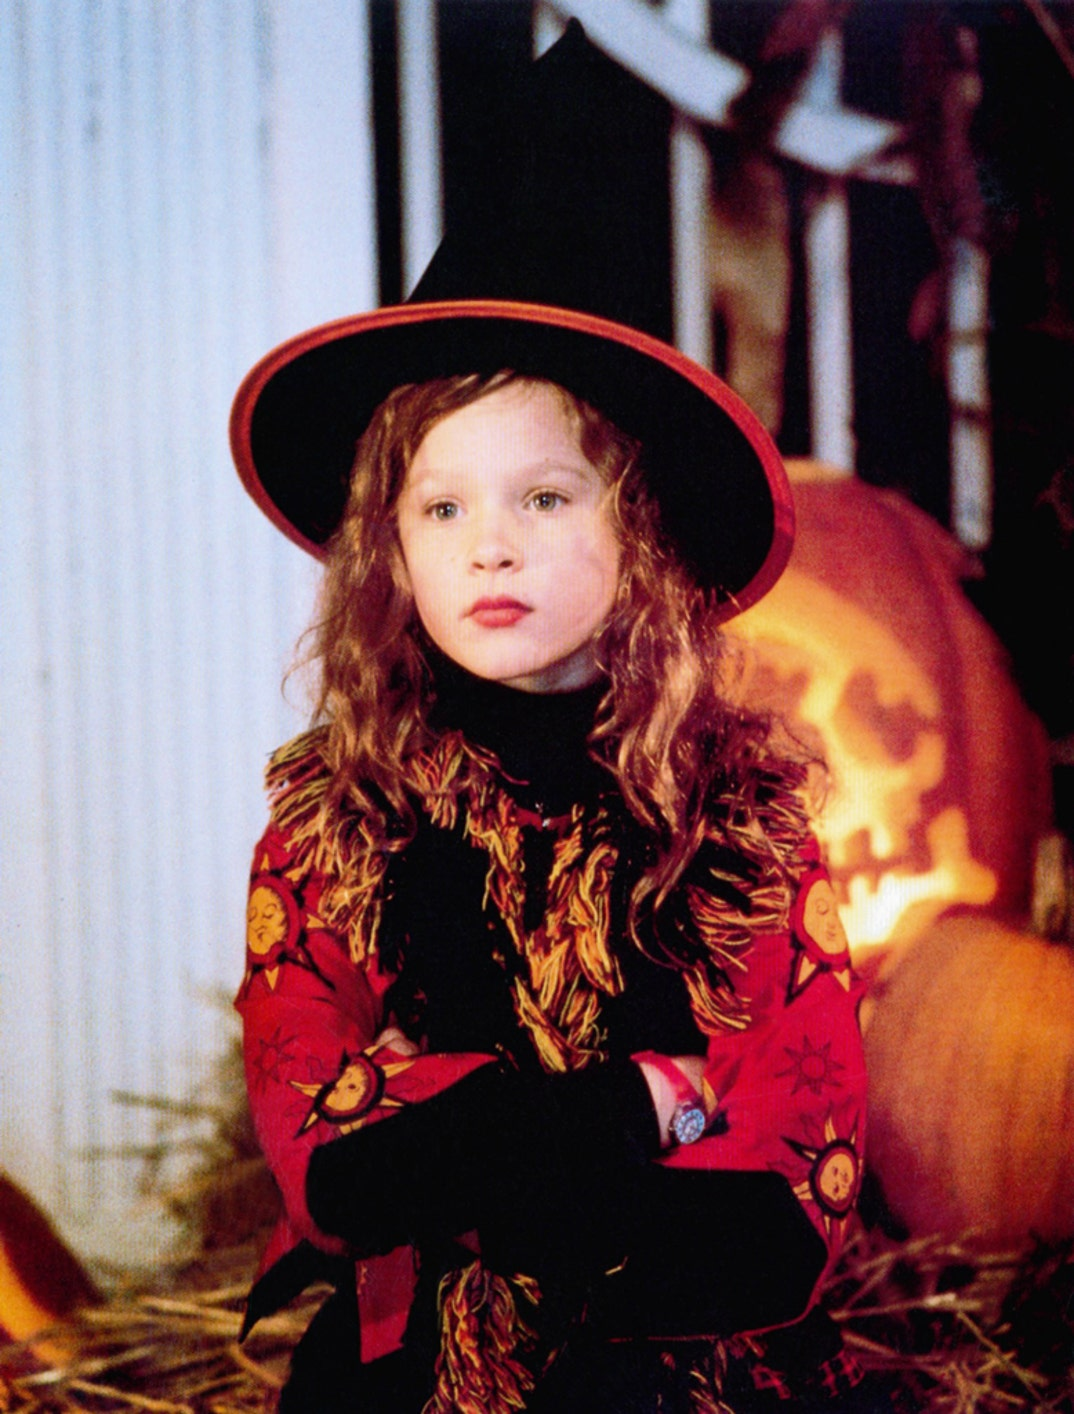 Thora Birch played the character Dani Dennison